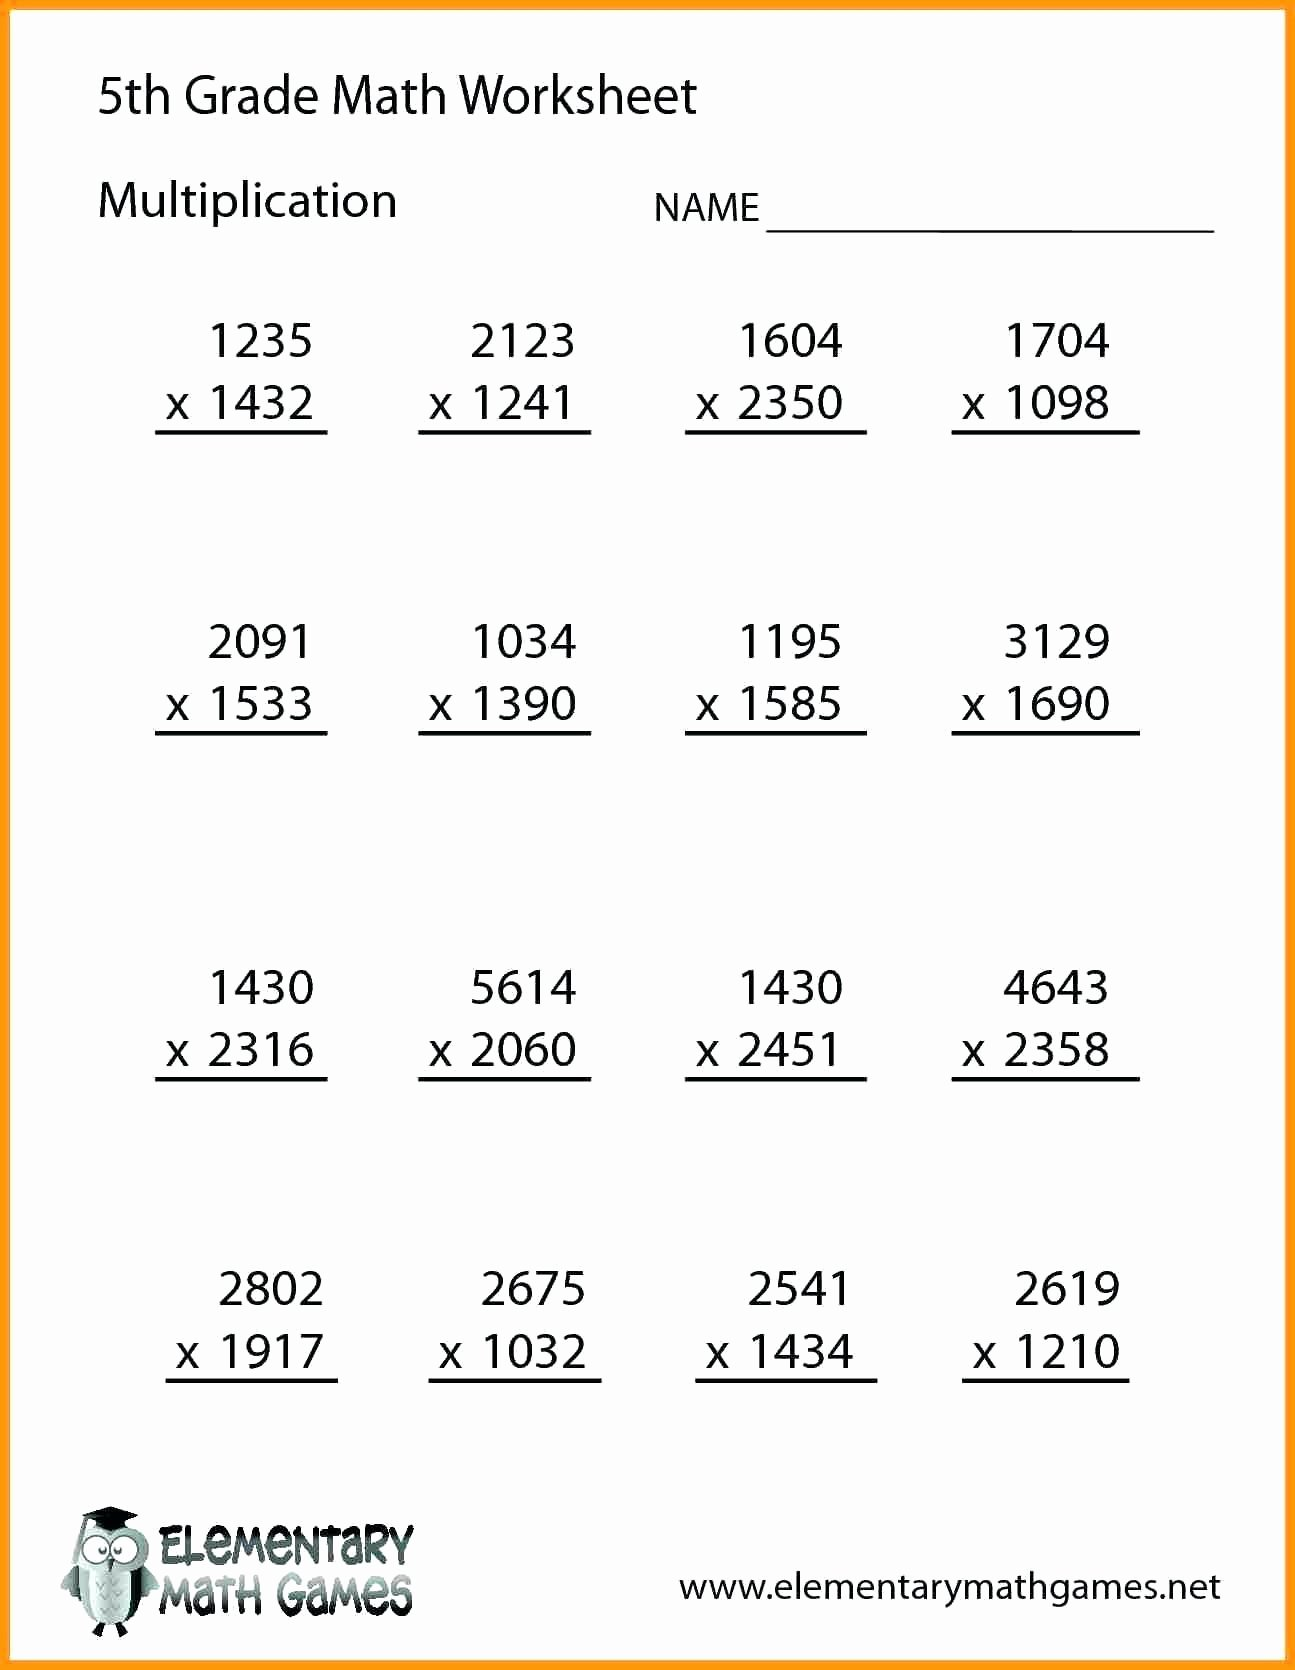 Decimal Multiplication Worksheets 5th Grade Lovely 52 Marvelous 5th Grade Math Worksheets Multiplication